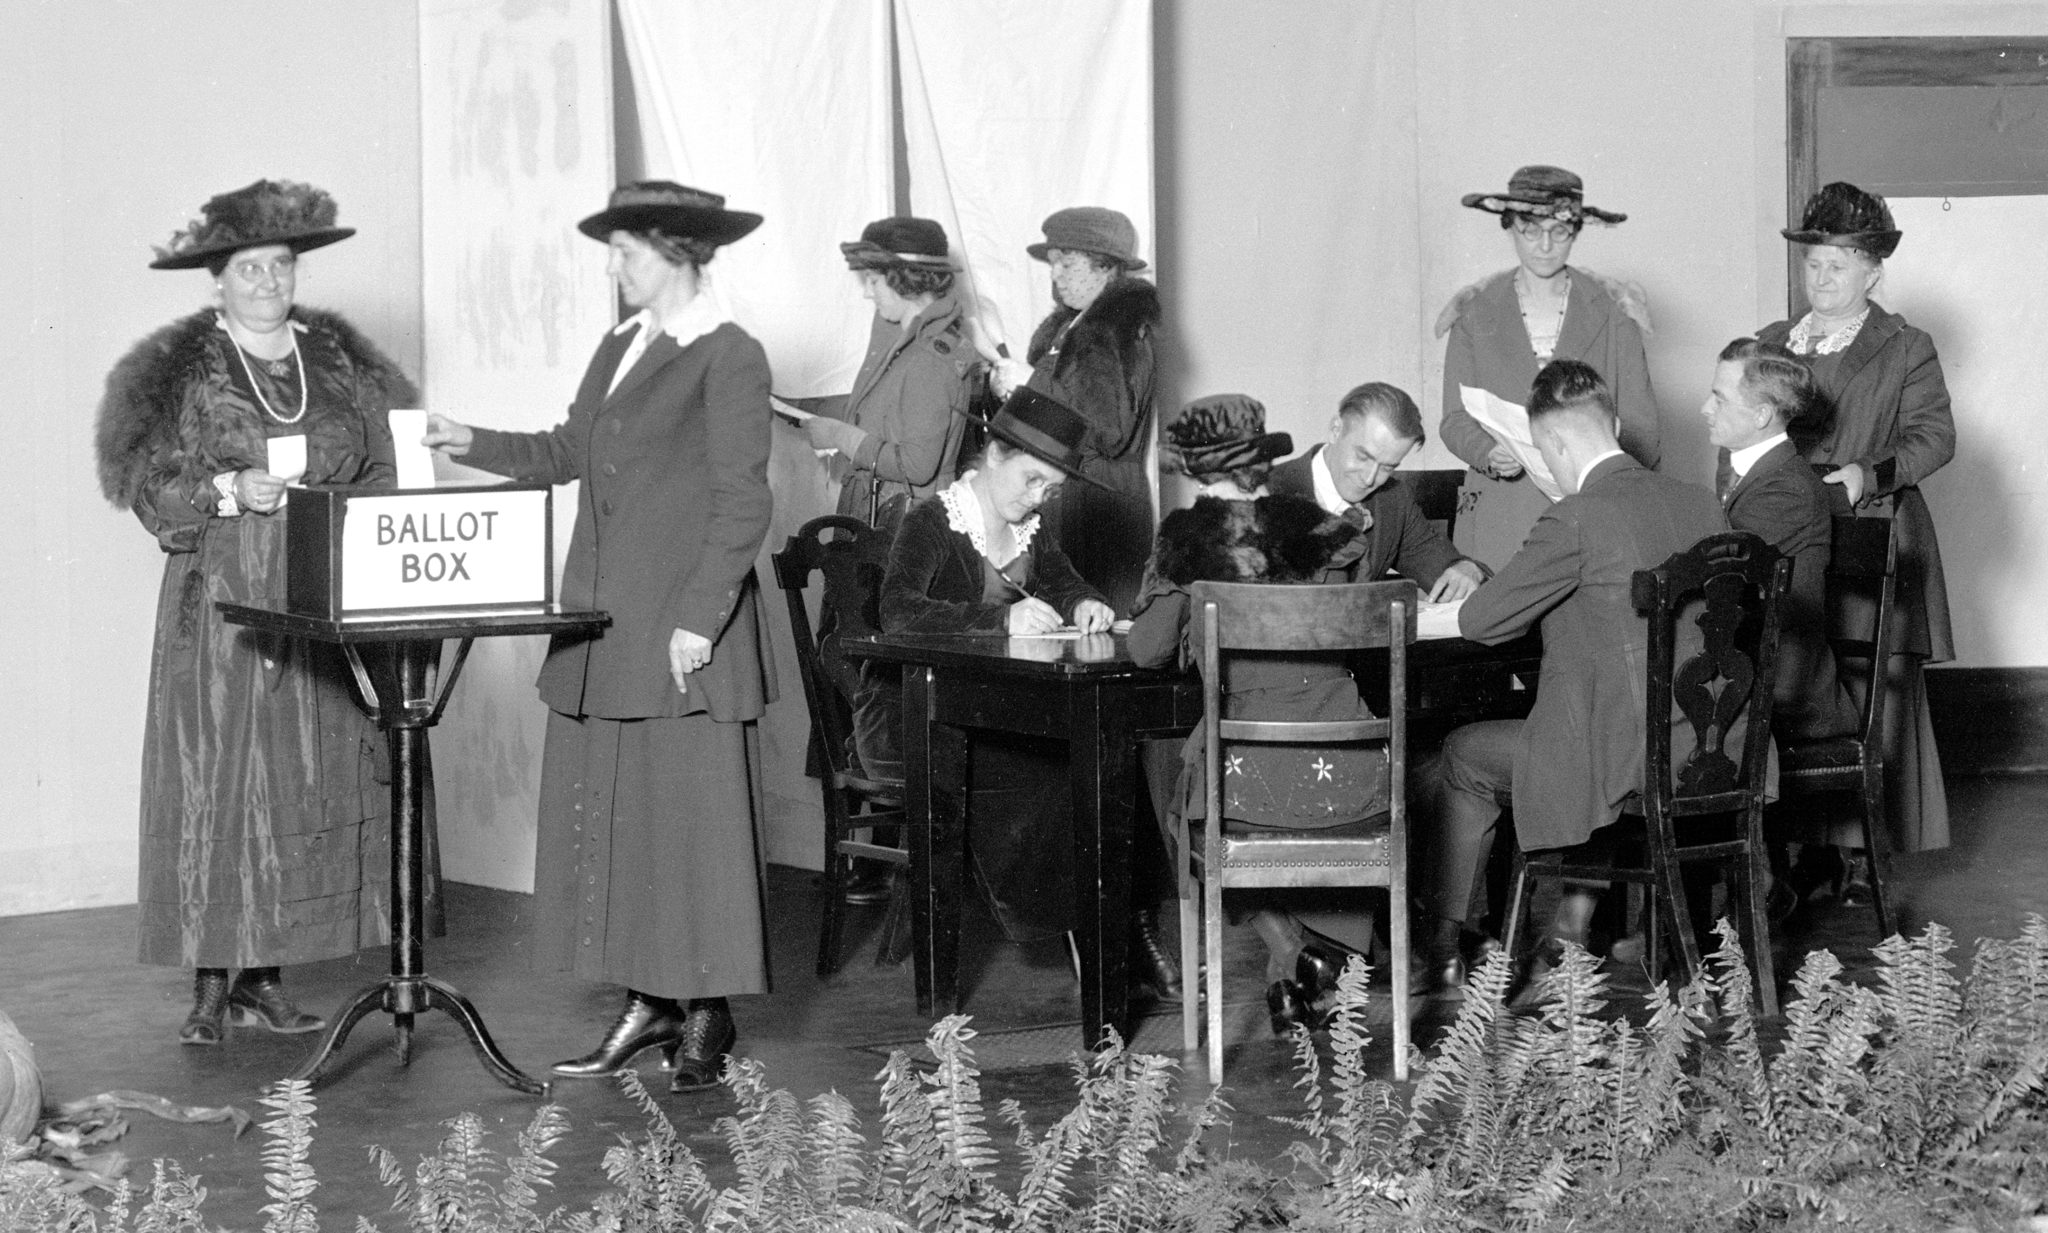 Women Practicing Voting in Dayton, OH on 10/27/1920